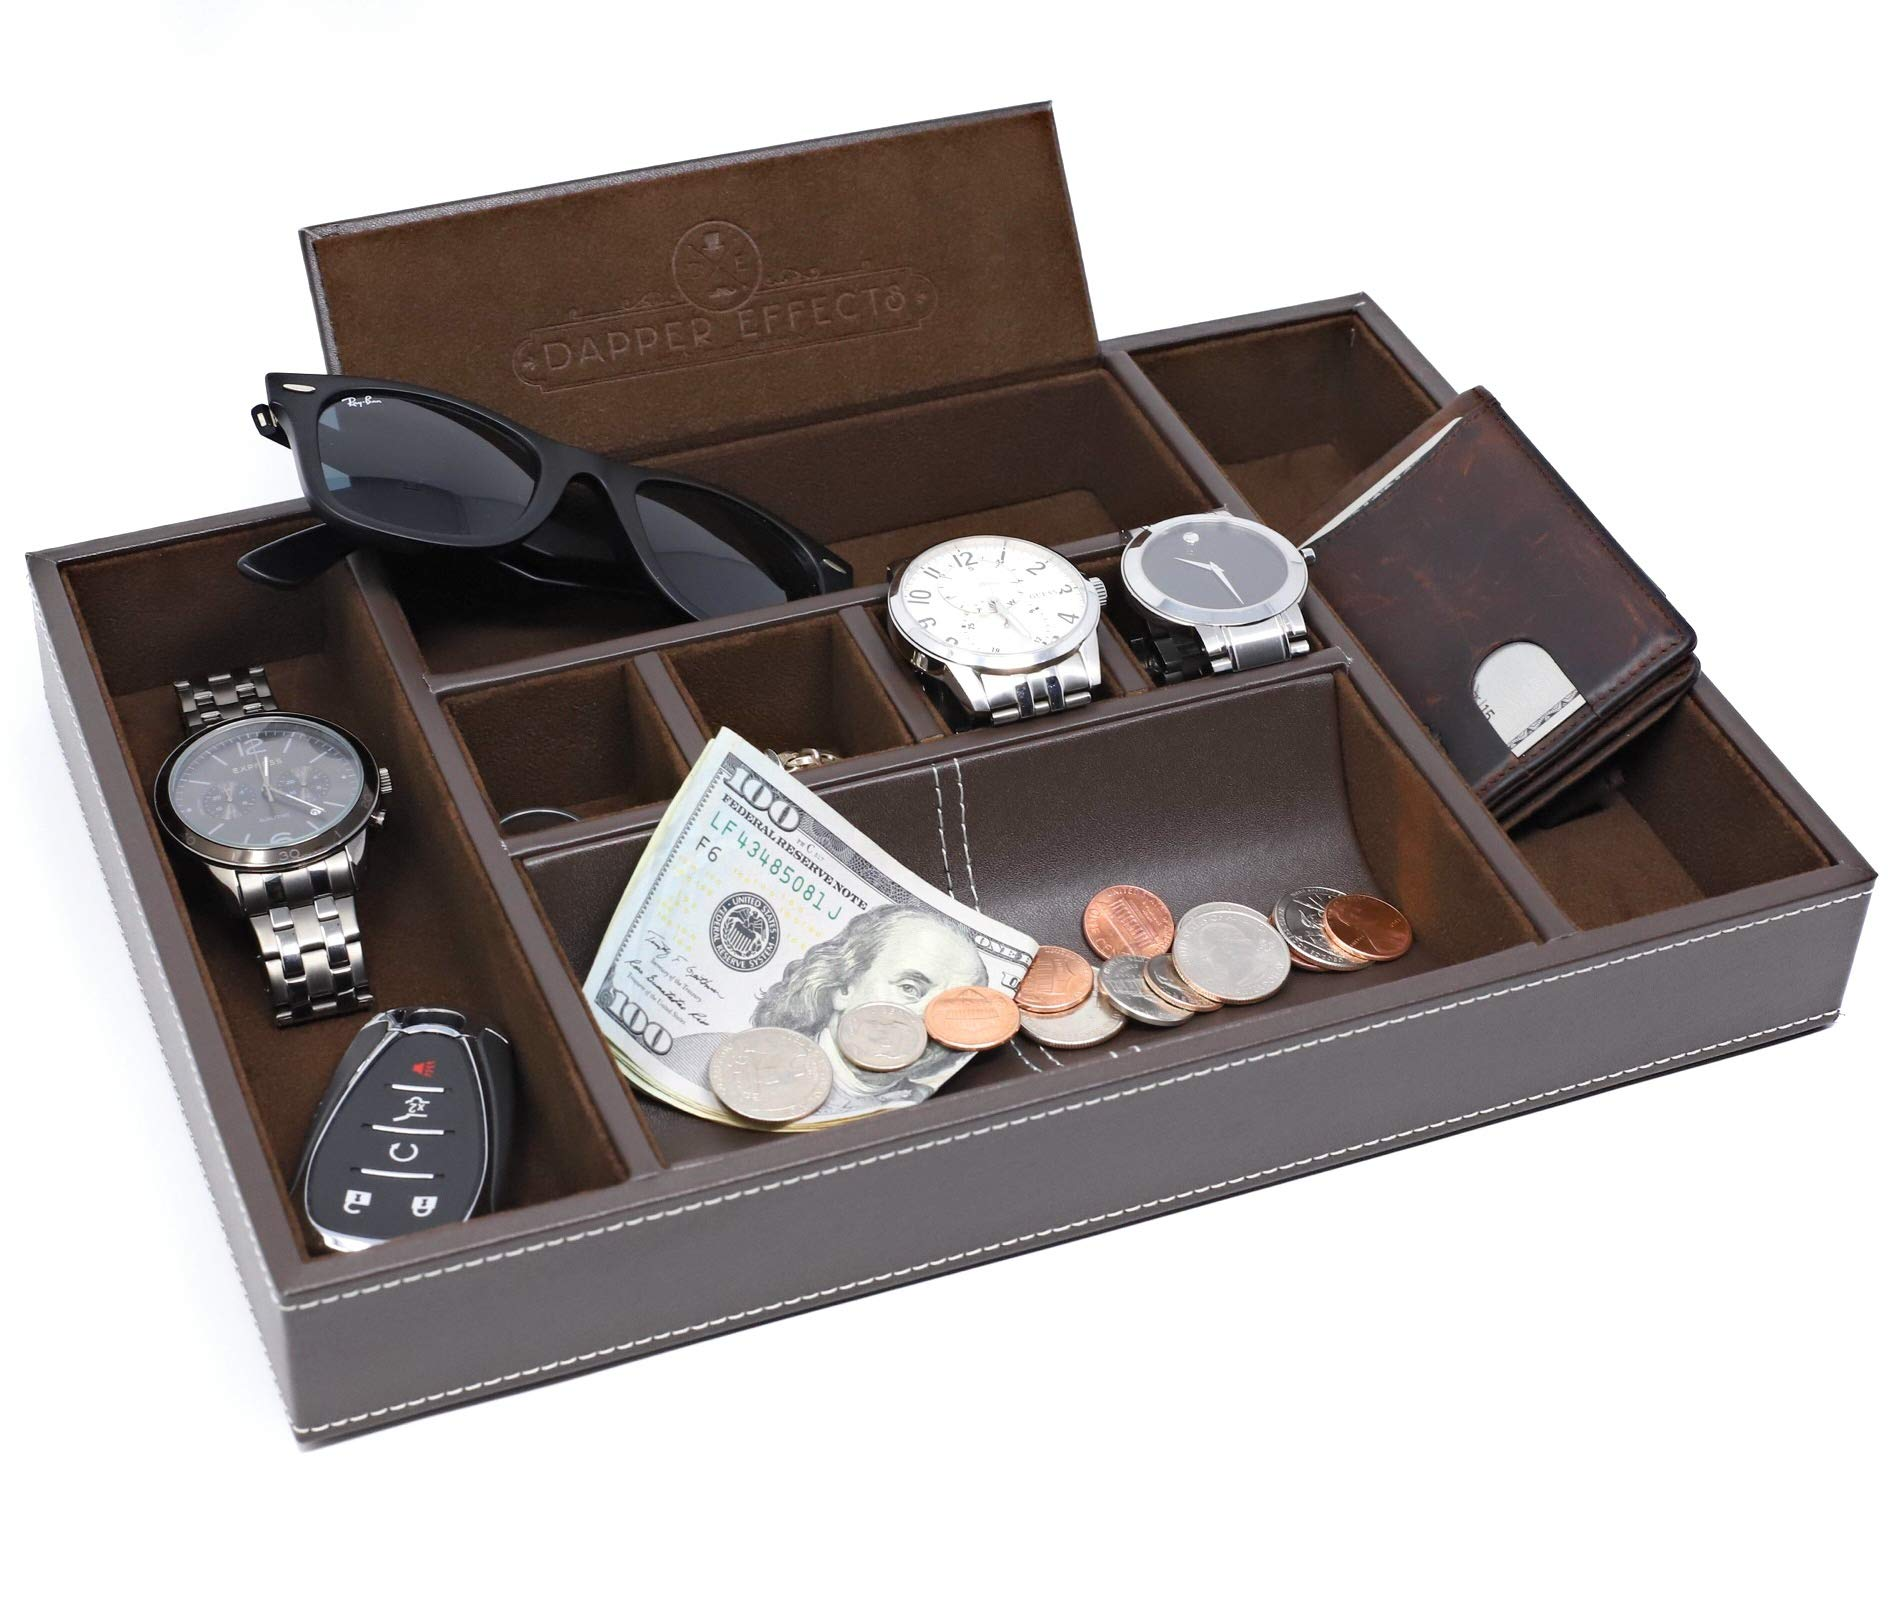 Dapper Effects Mens Valet Tray - Organizer For Desk, Dresser Top Or Nightstand (Brown)